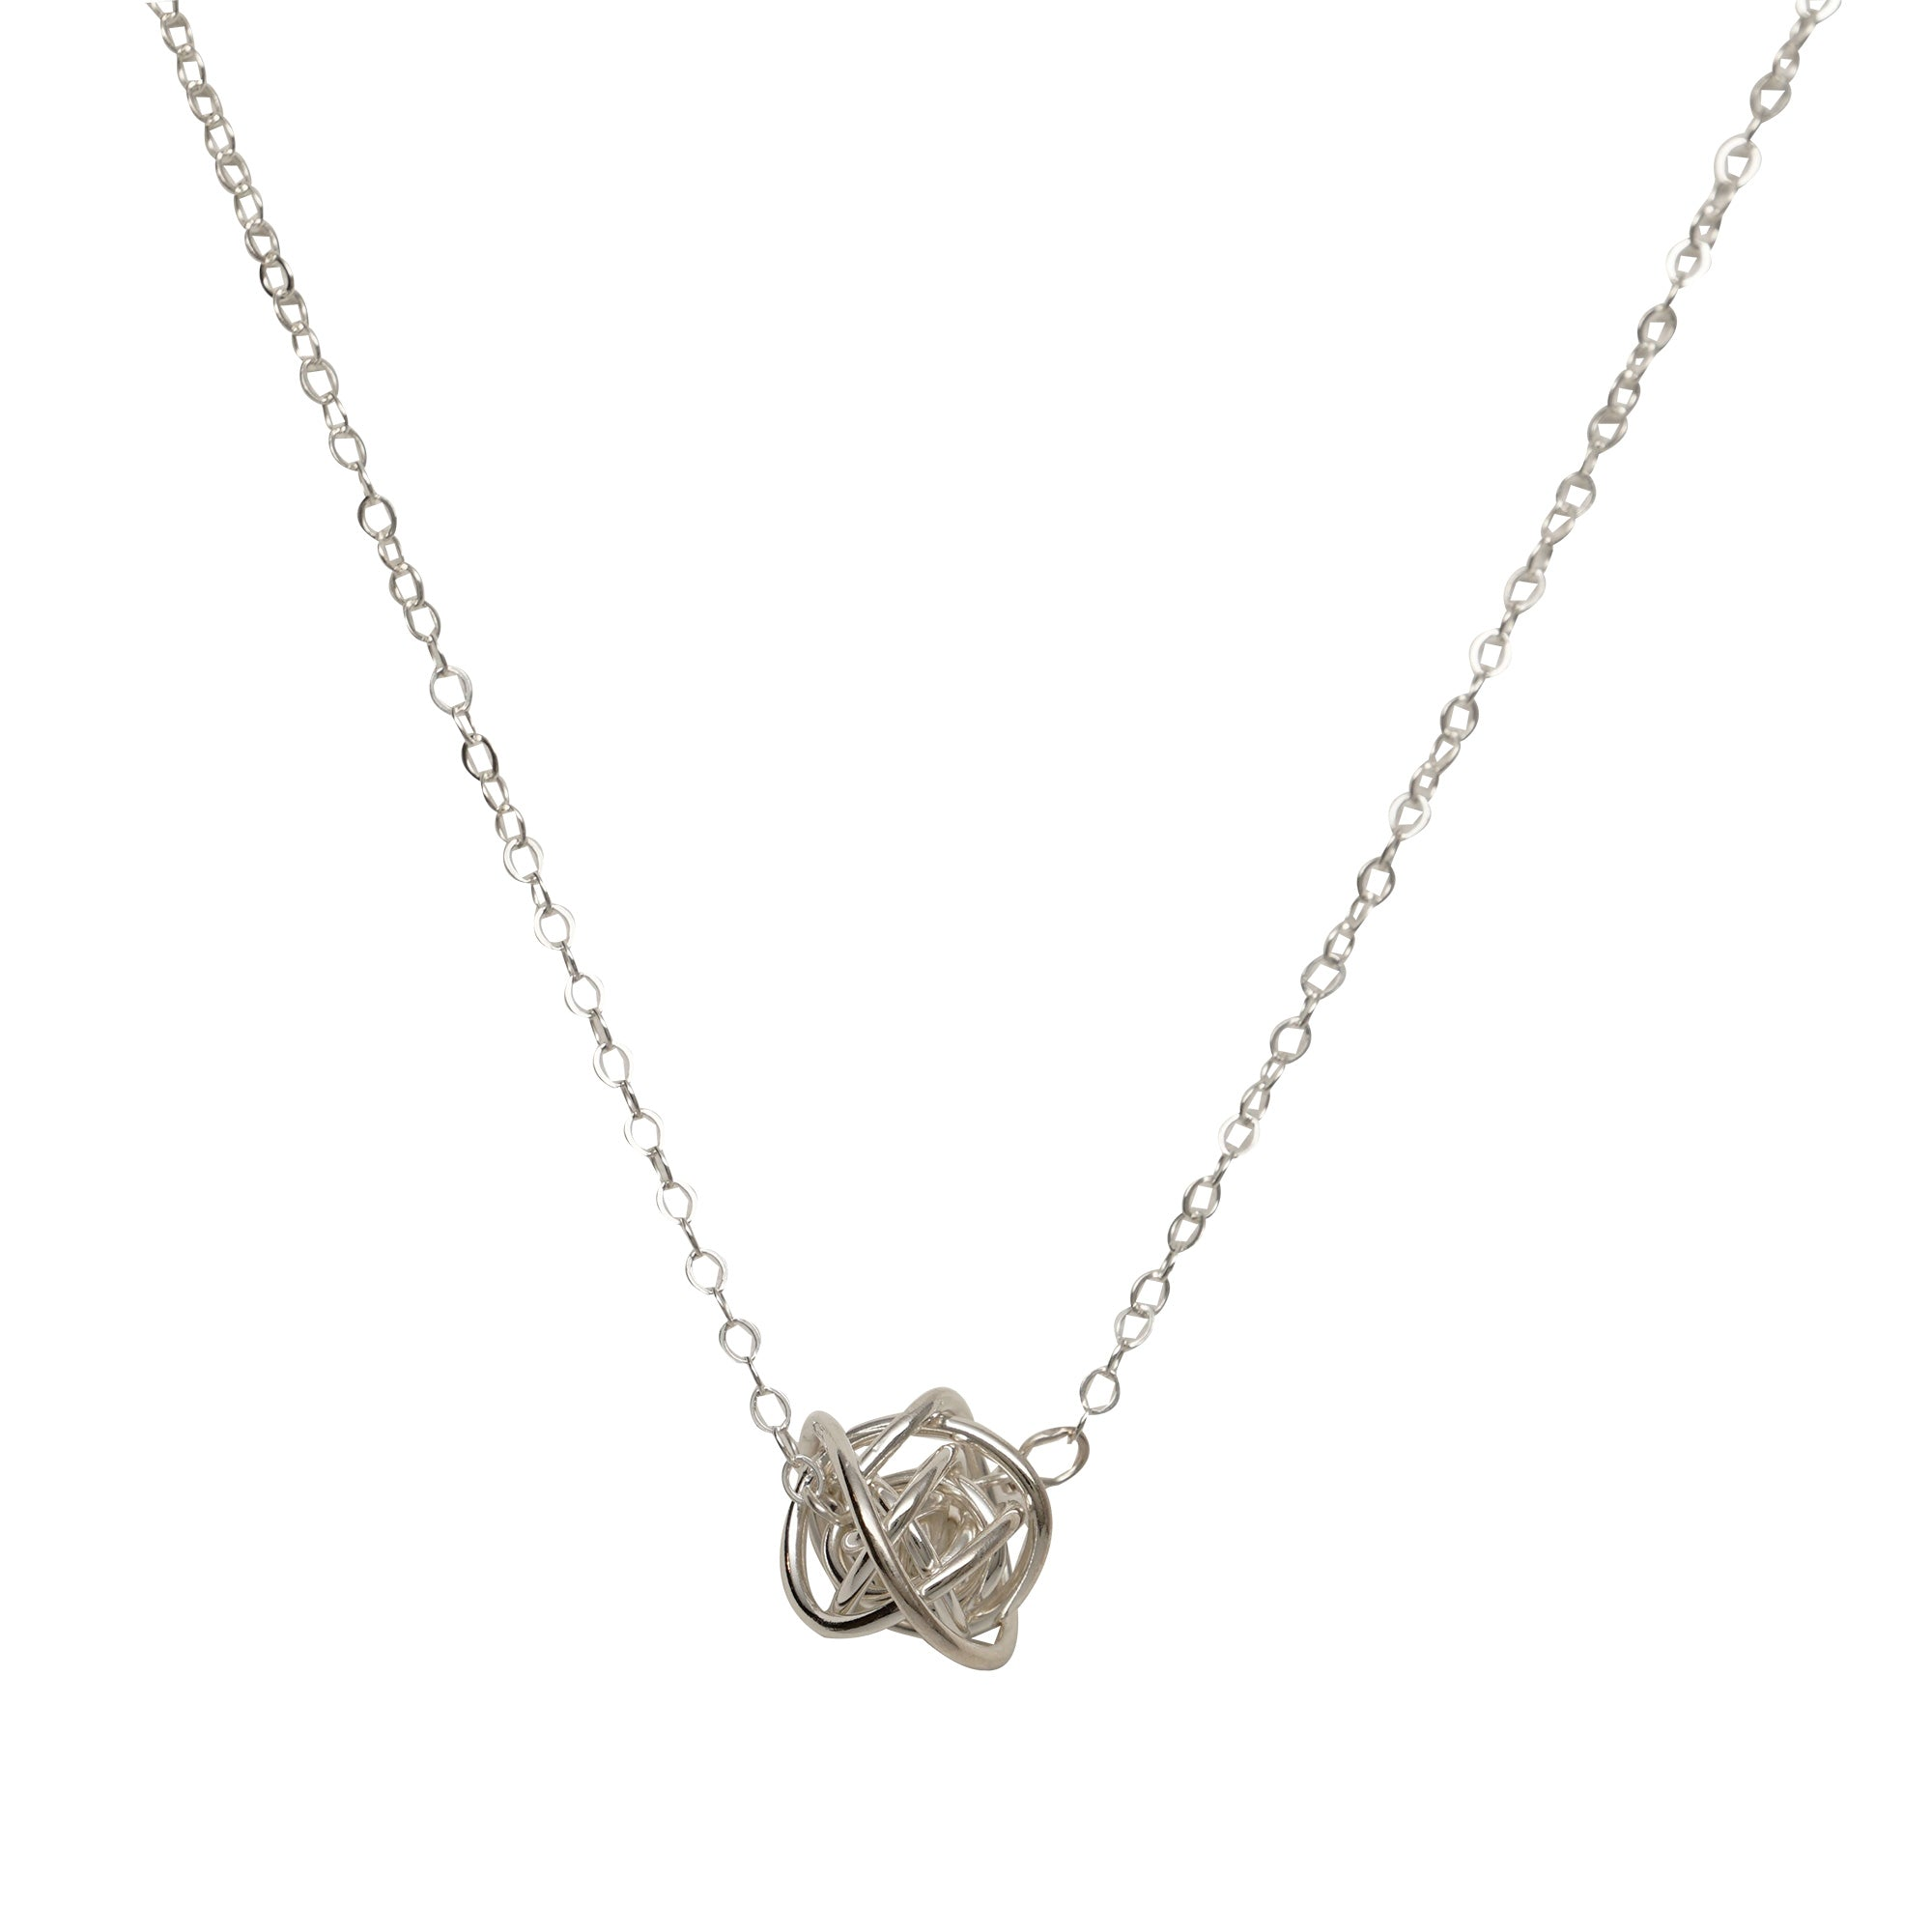 jewellery knot pendant open necklace sterling silver necklaces simply zoom